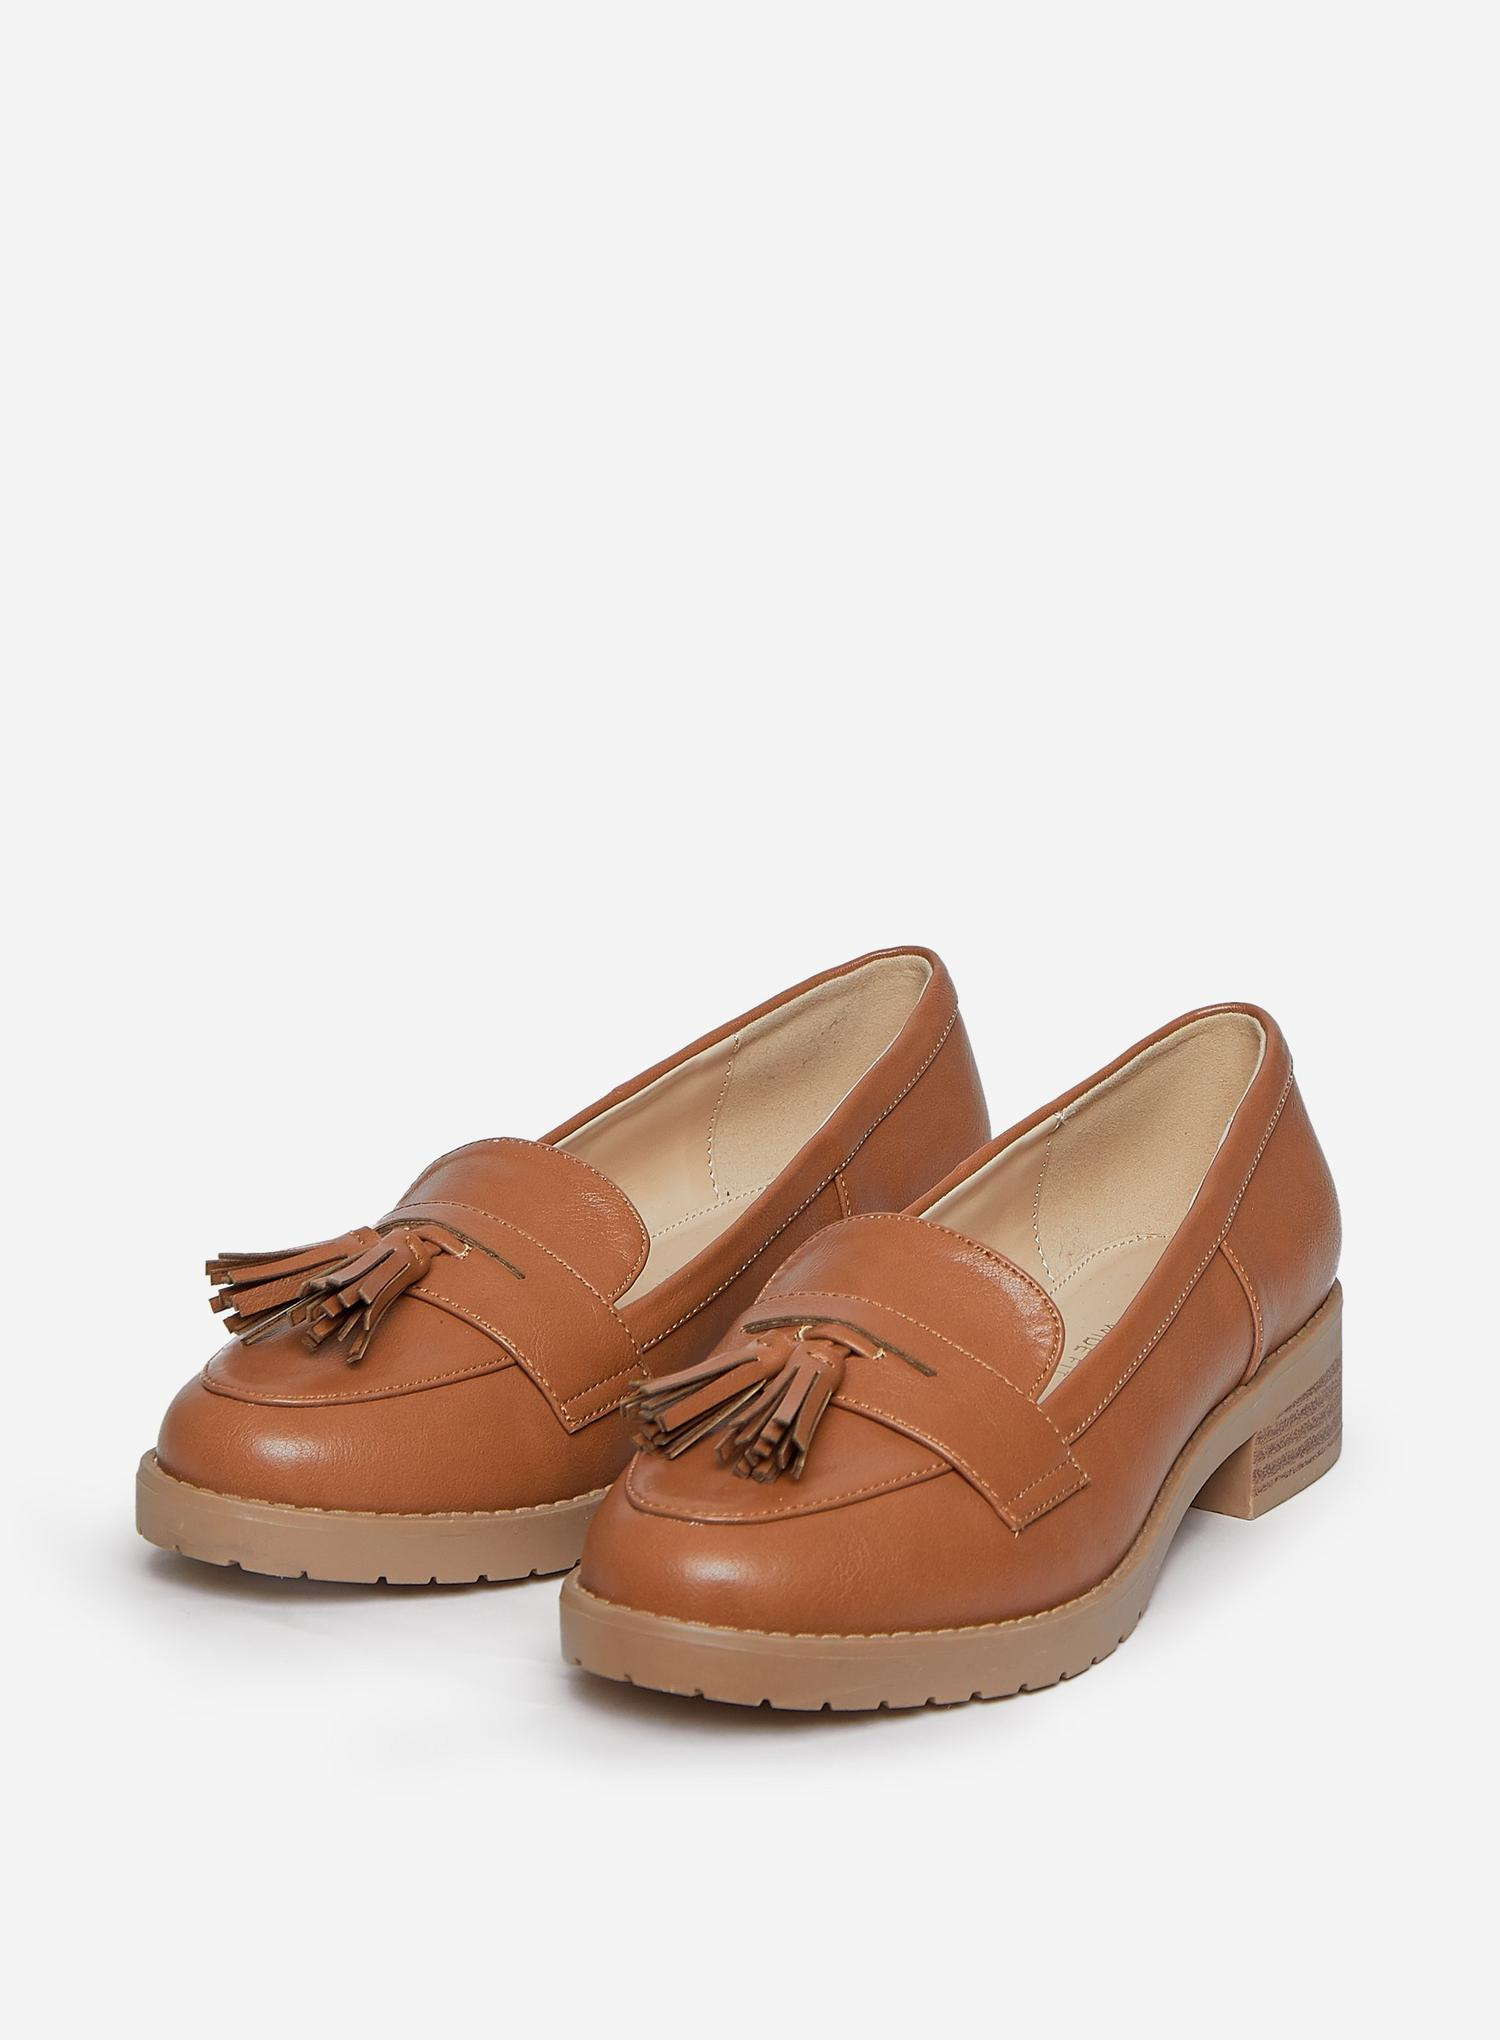 109 Wide Fit Tan Litty Loafers image number 1